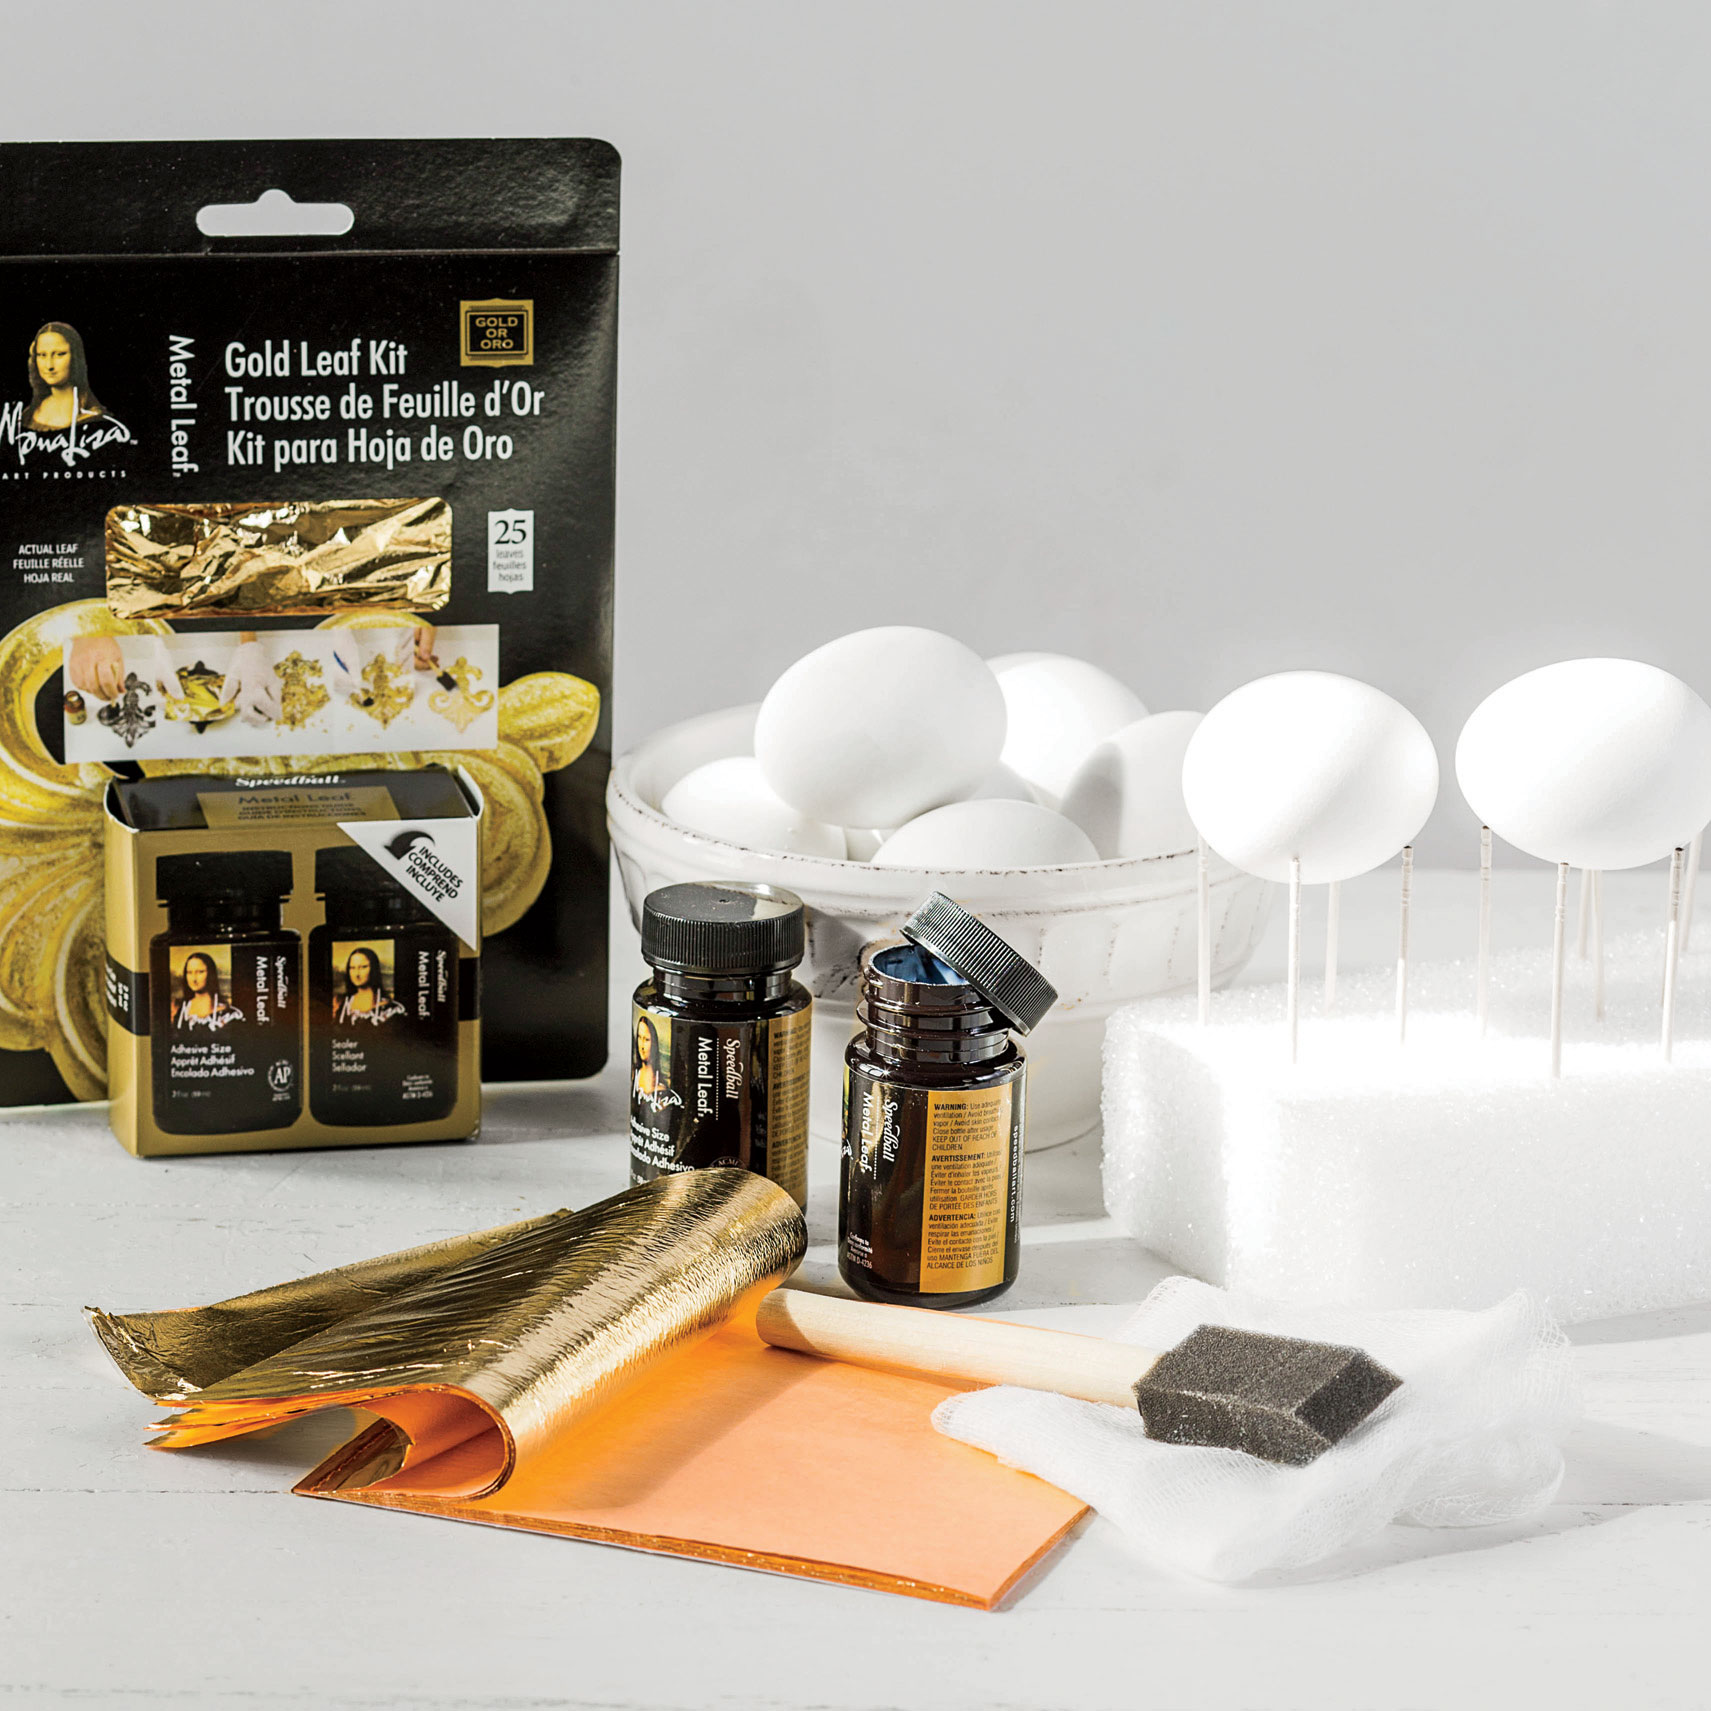 Materials for Golden Egg